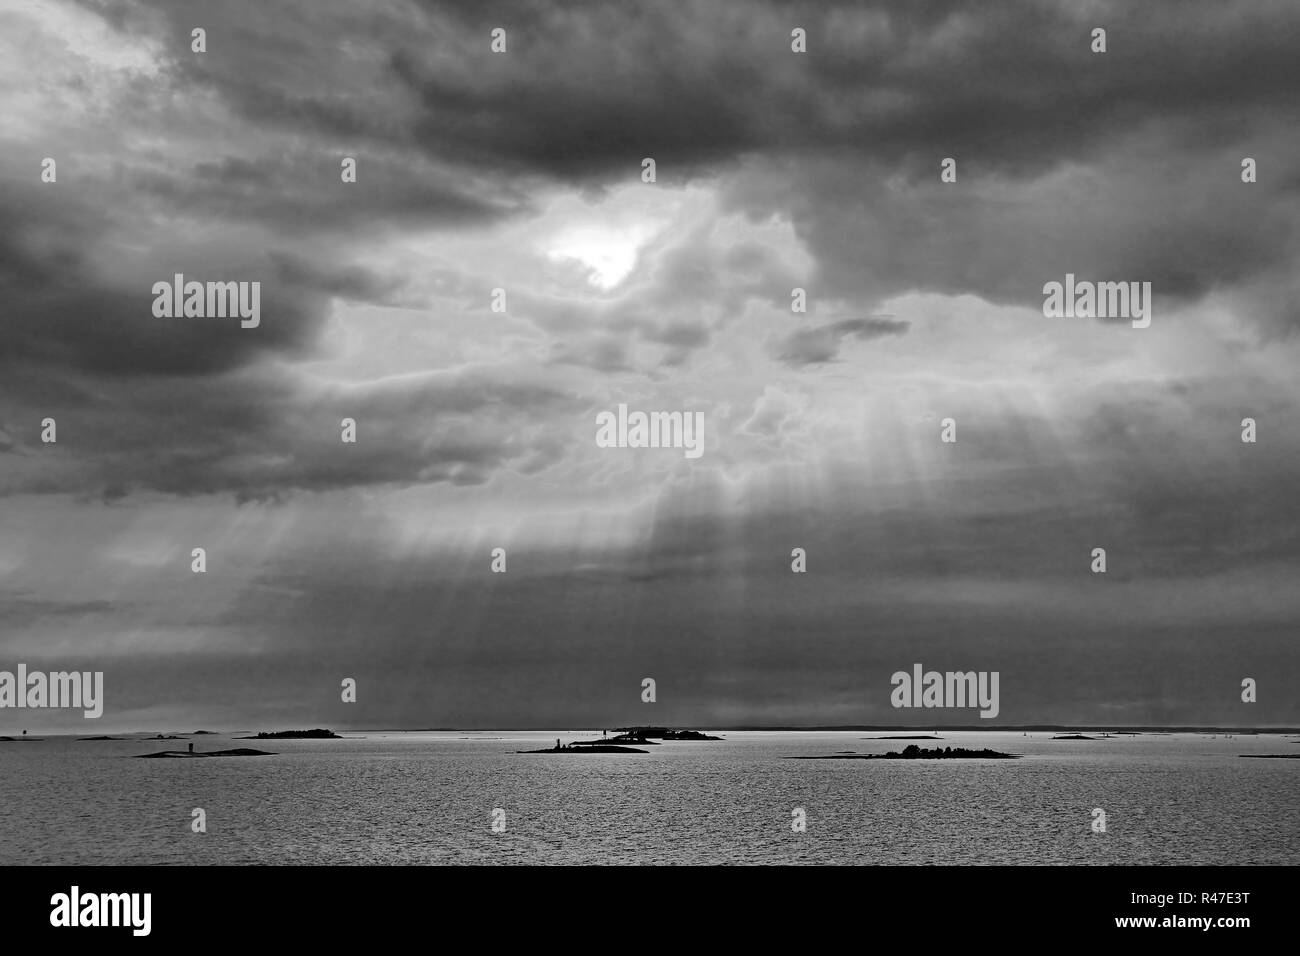 The sun behind the clouds with rays of light shining down on sea - Stock Image